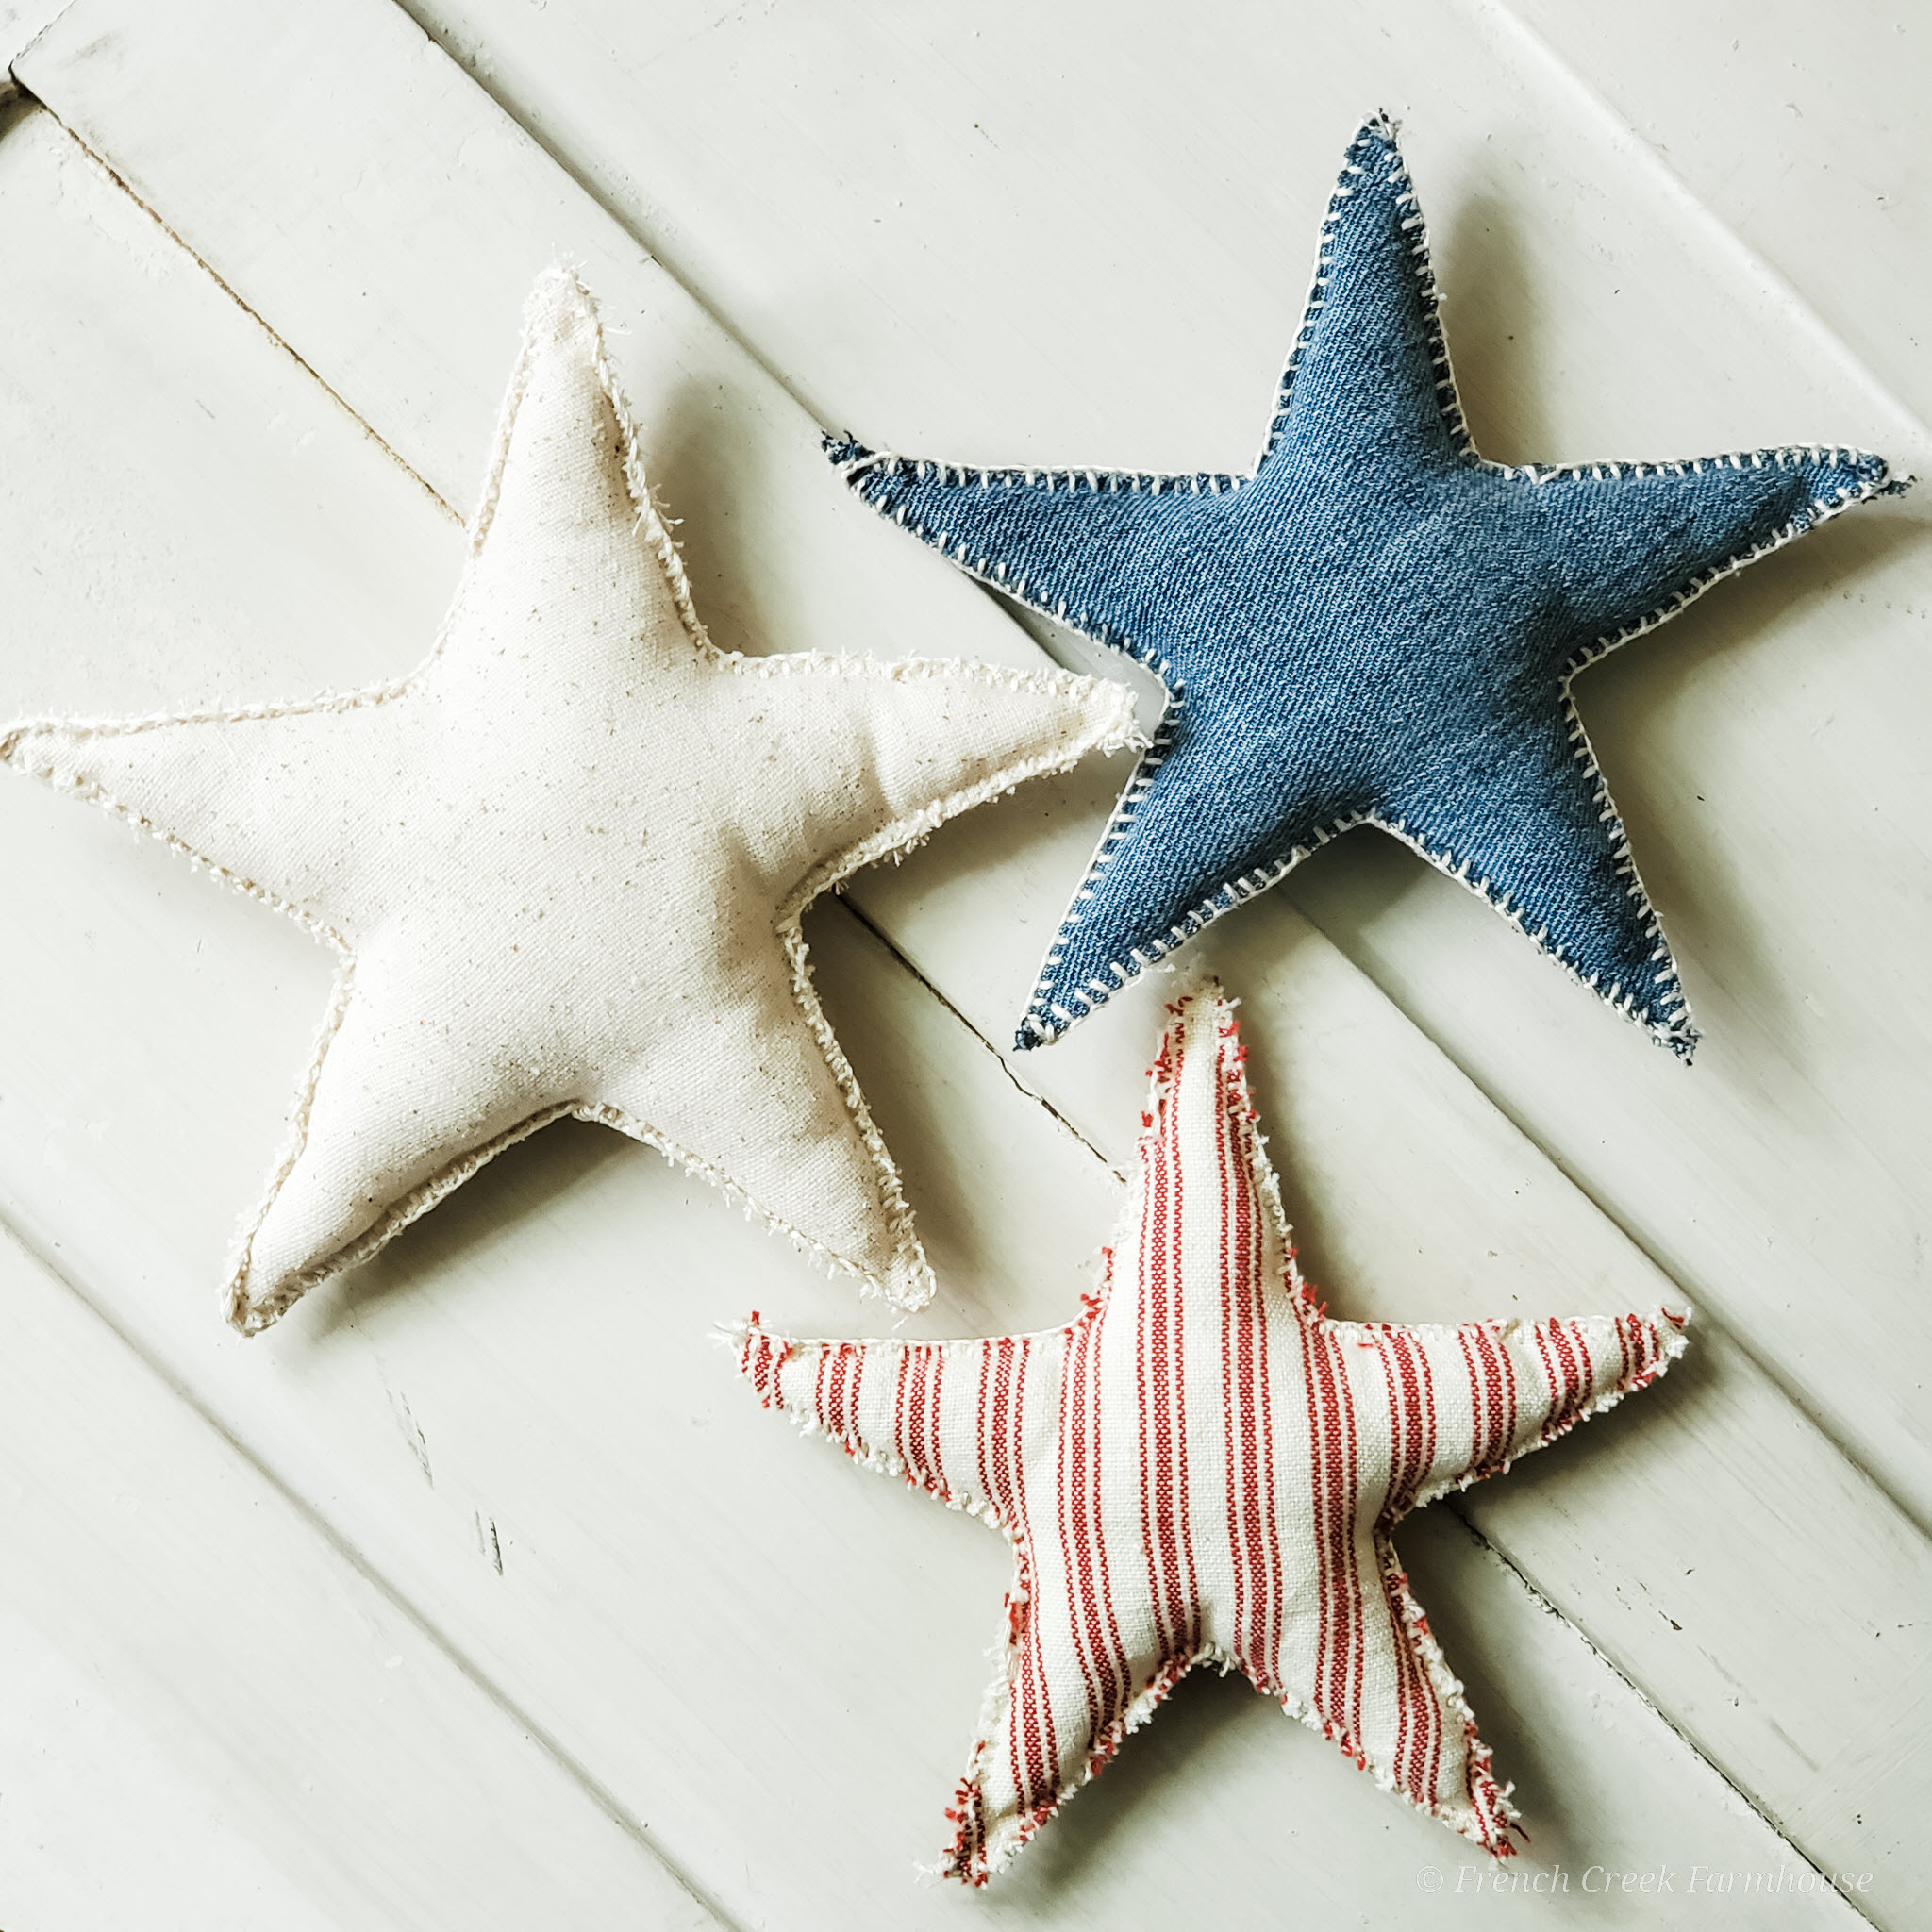 Get the free printable pattern to make these adorable patriotic decor